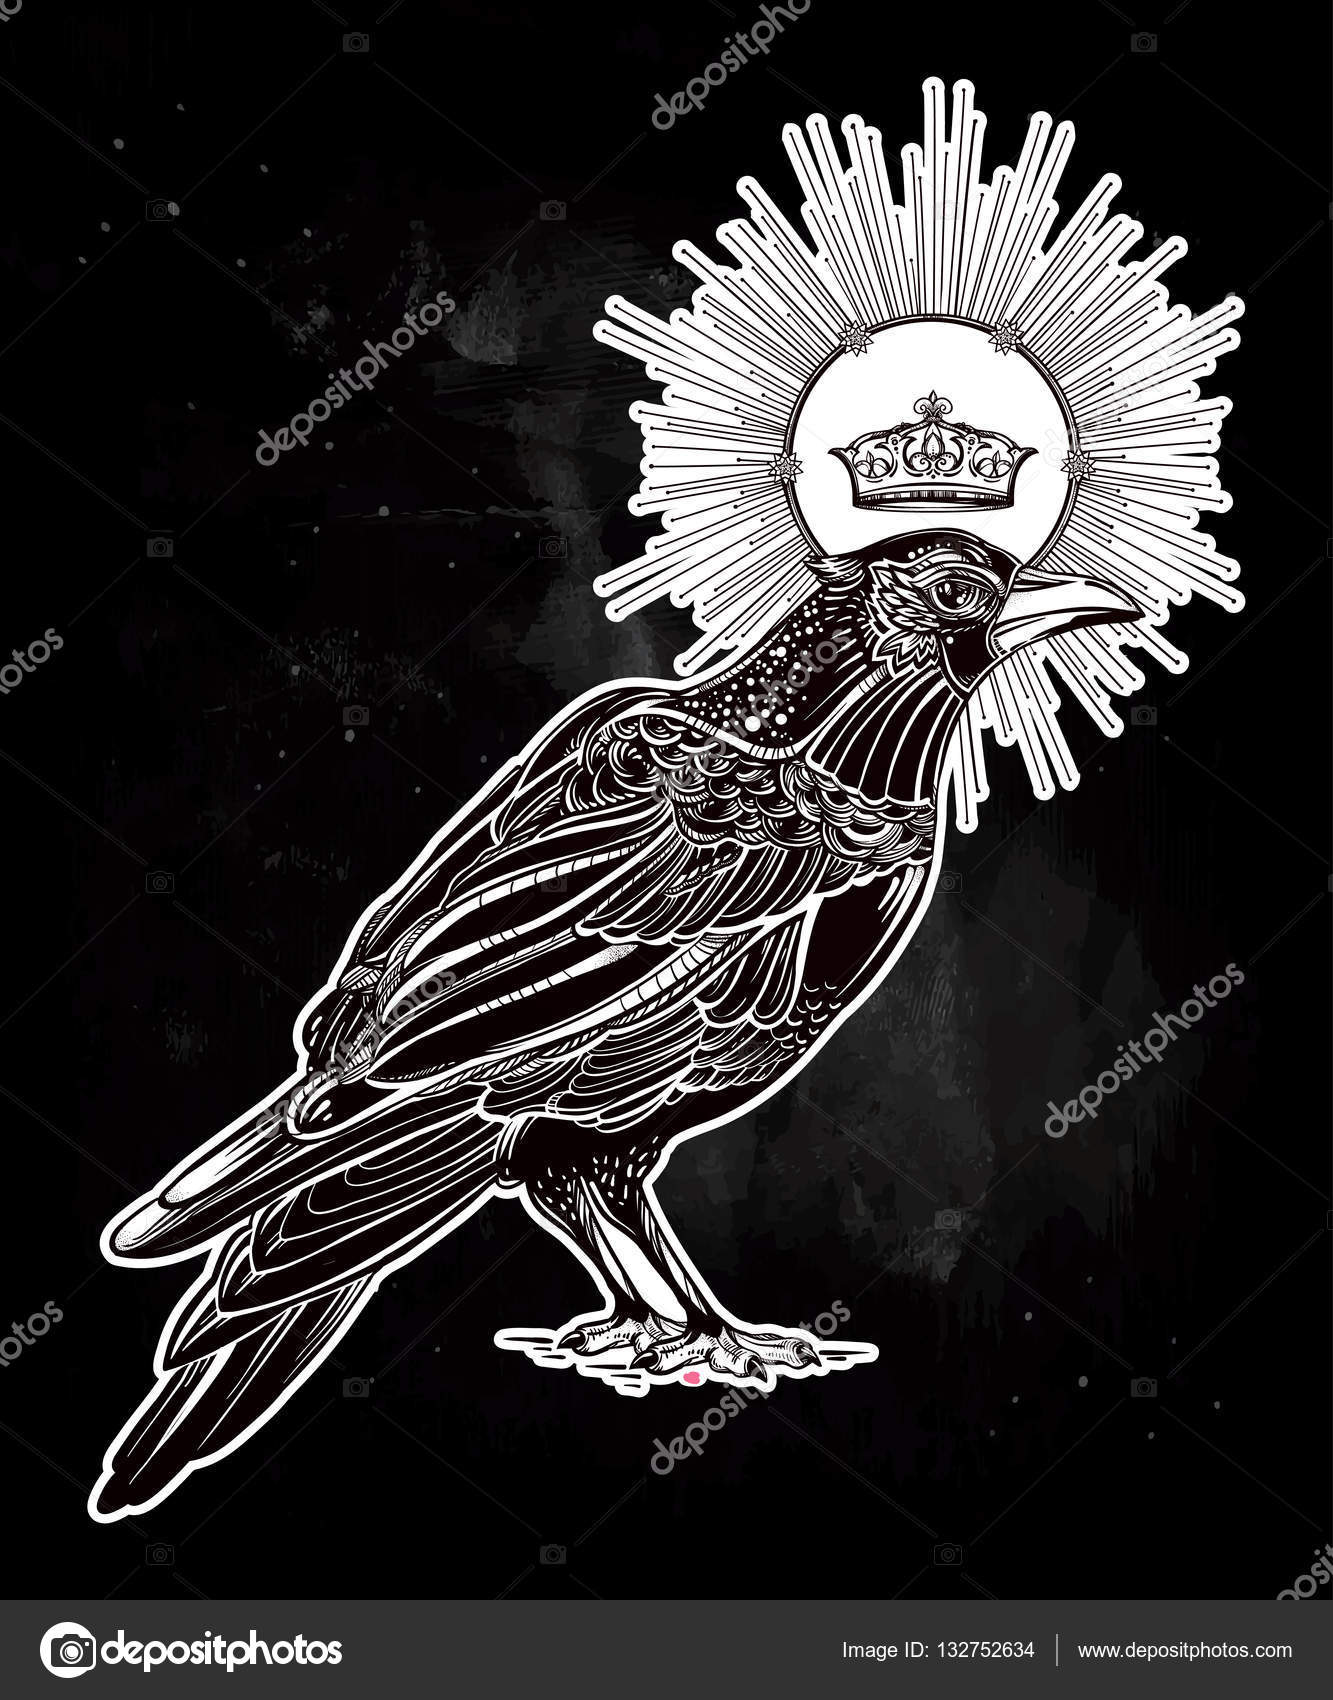 Drawn raven black and white With medieval hand spirituality Vector